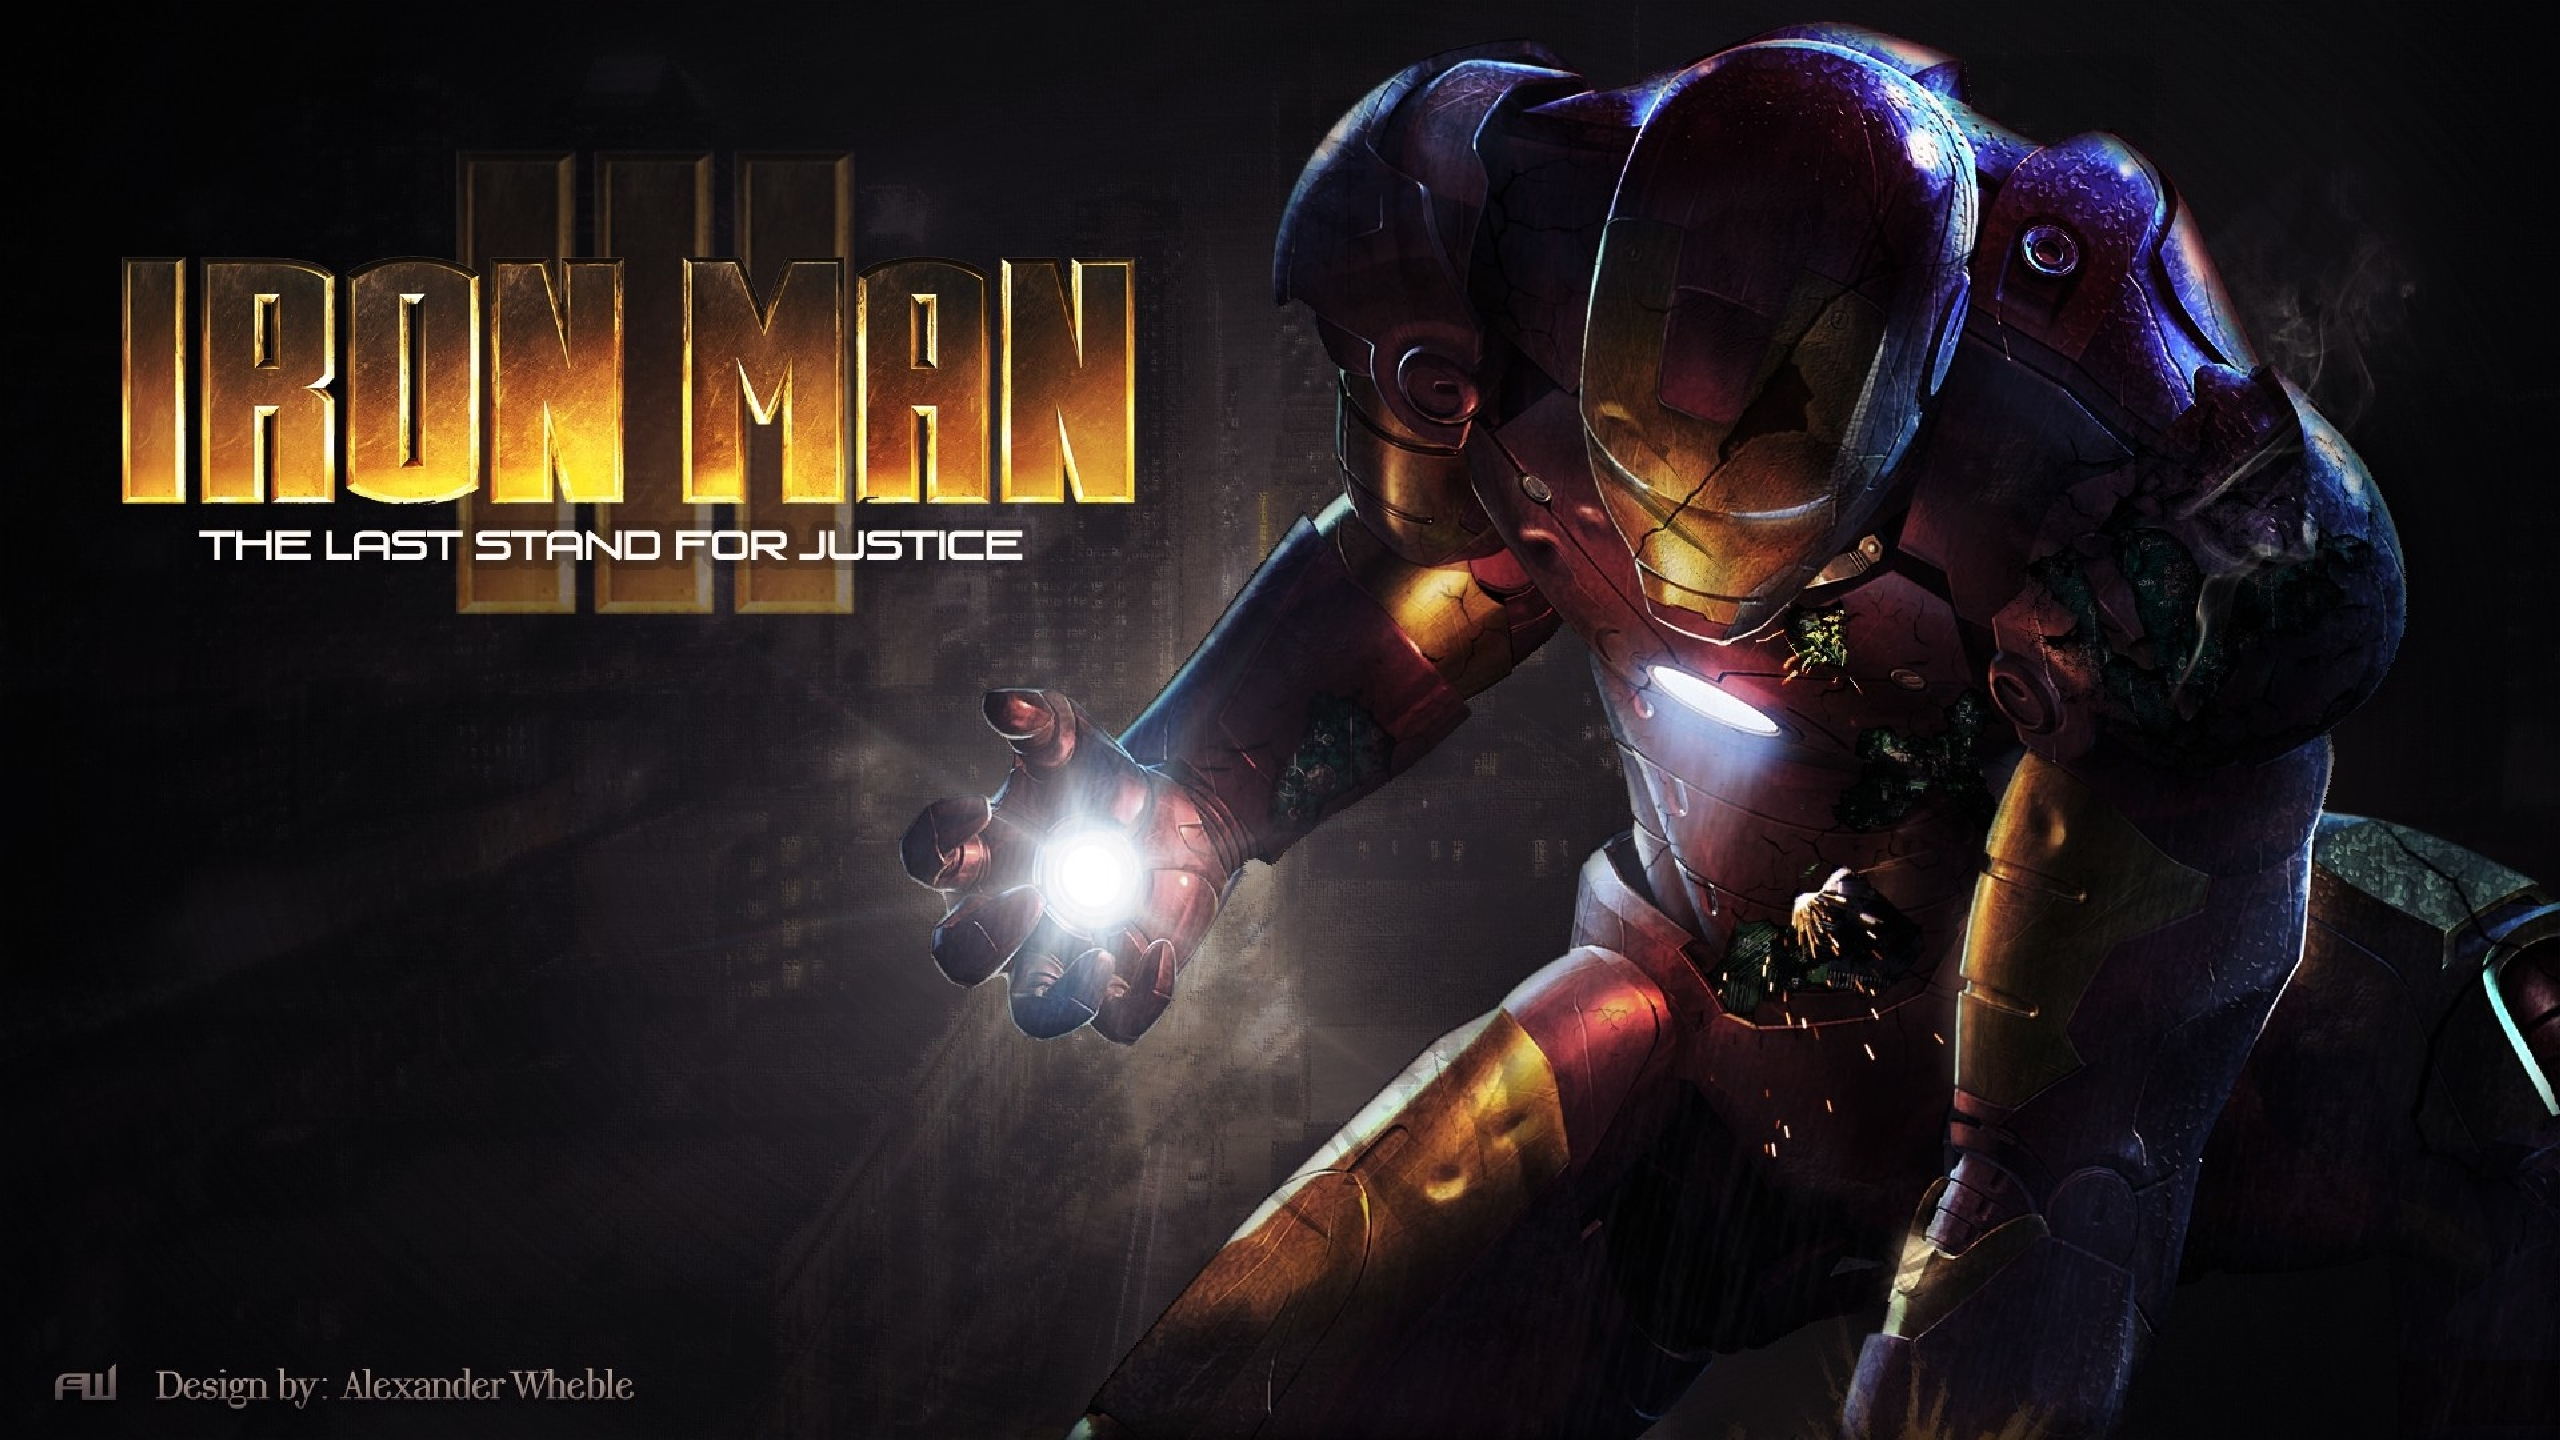 iron man 3 full hd wallpaper and background image | 2560x1440 | id